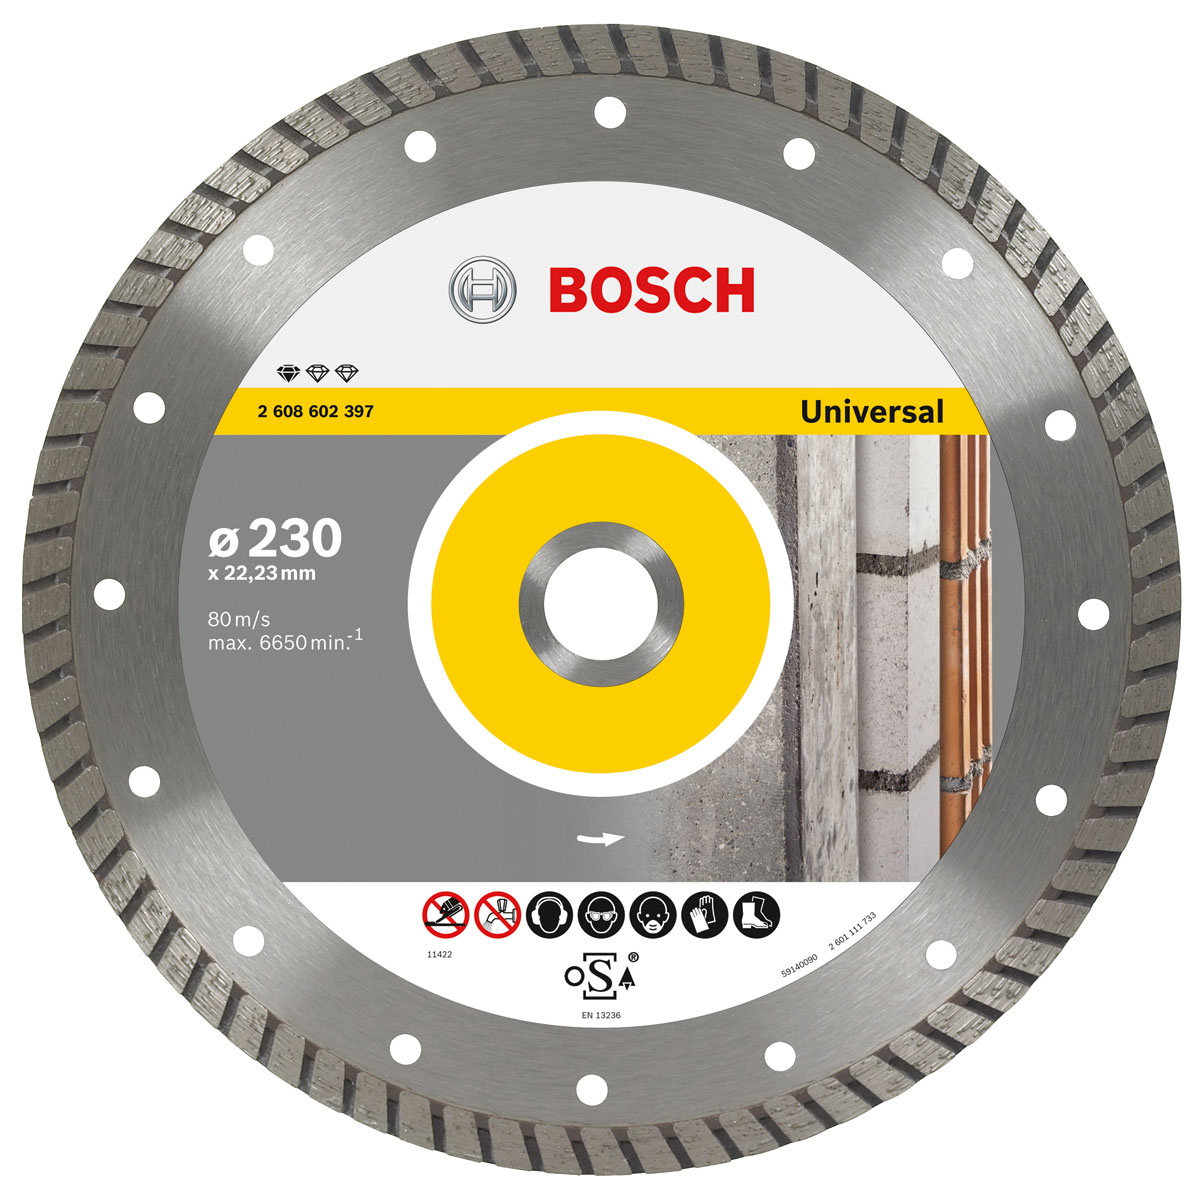 BOSCH Standard for Universal 230mm